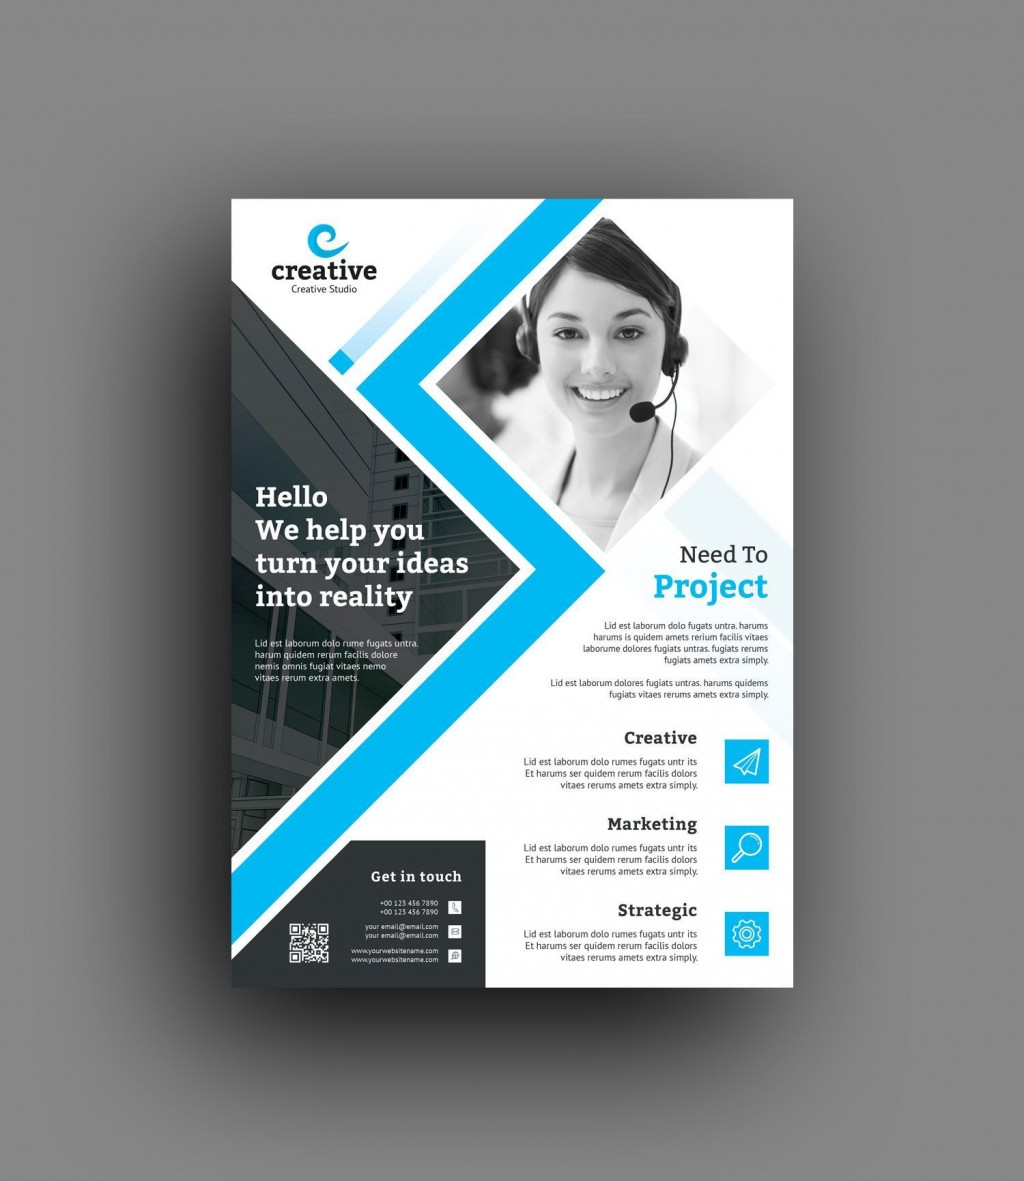 002 Singular In Design Flyer Template High Resolution  Templates Indesign Free For Mac EventLarge